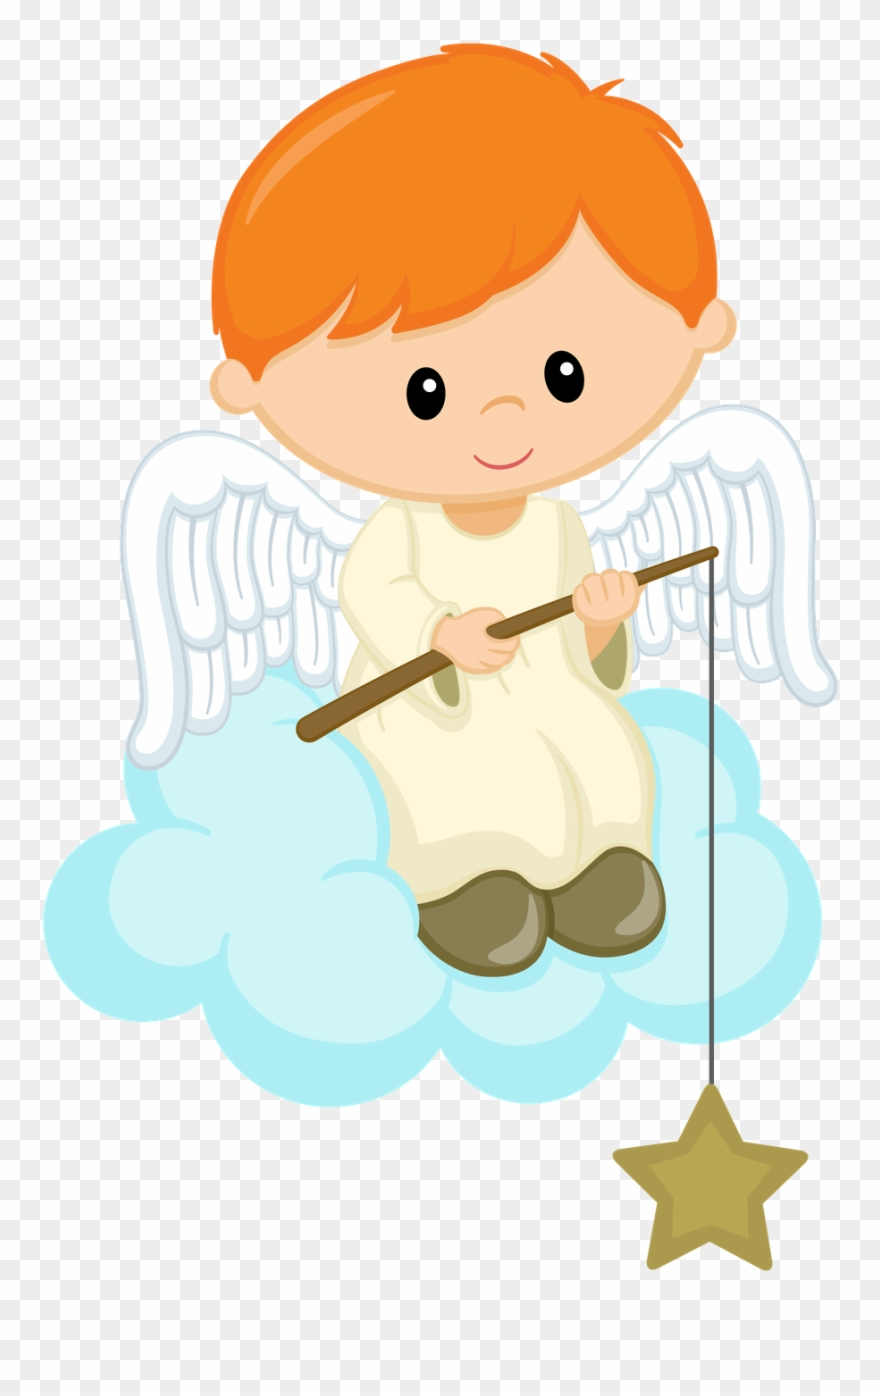 Angel clipart. Picture stock baby png